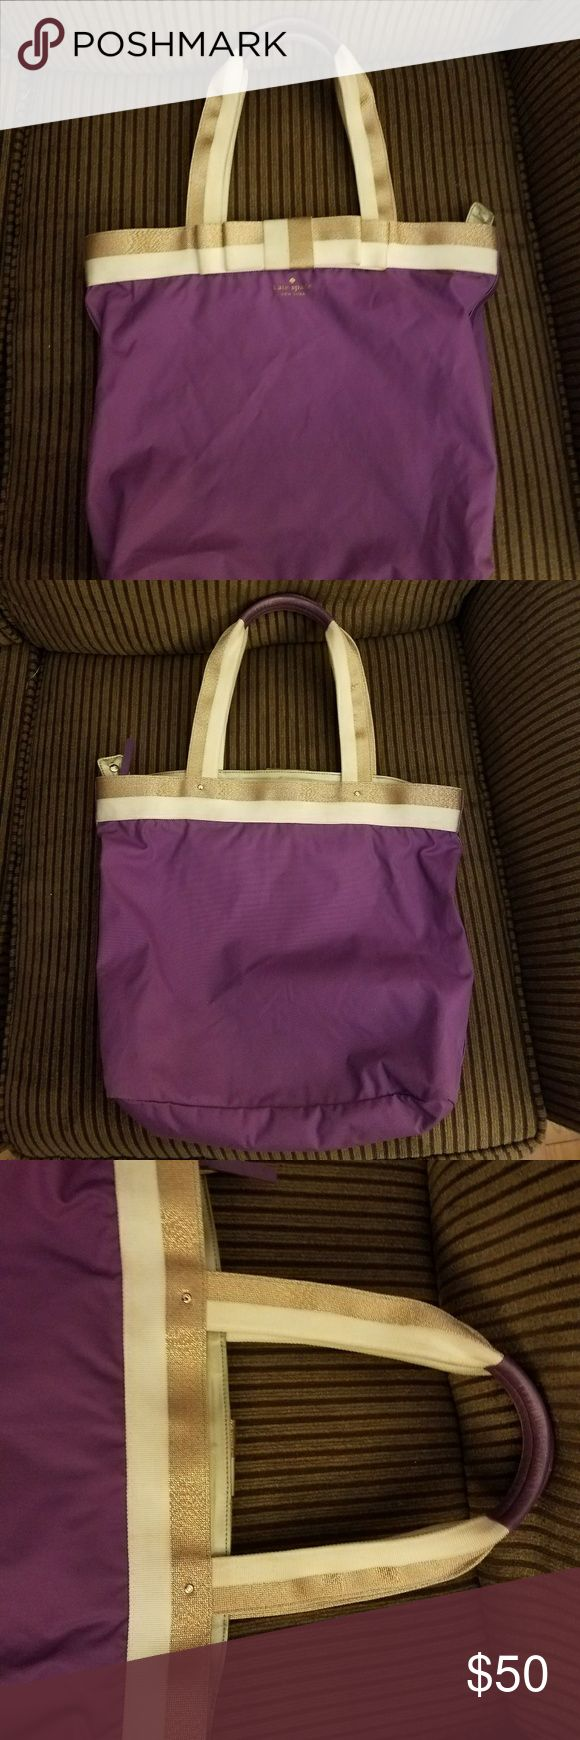 Kate Spade Barrow Street Bon Shopper Purple tote bag with cute cream and gold trim and bow. Lined inside with Kate Spade logo on bottom. Some wear to handles and some light pen marks inside. Approx  13h x 12w. kate spade Bags Totes